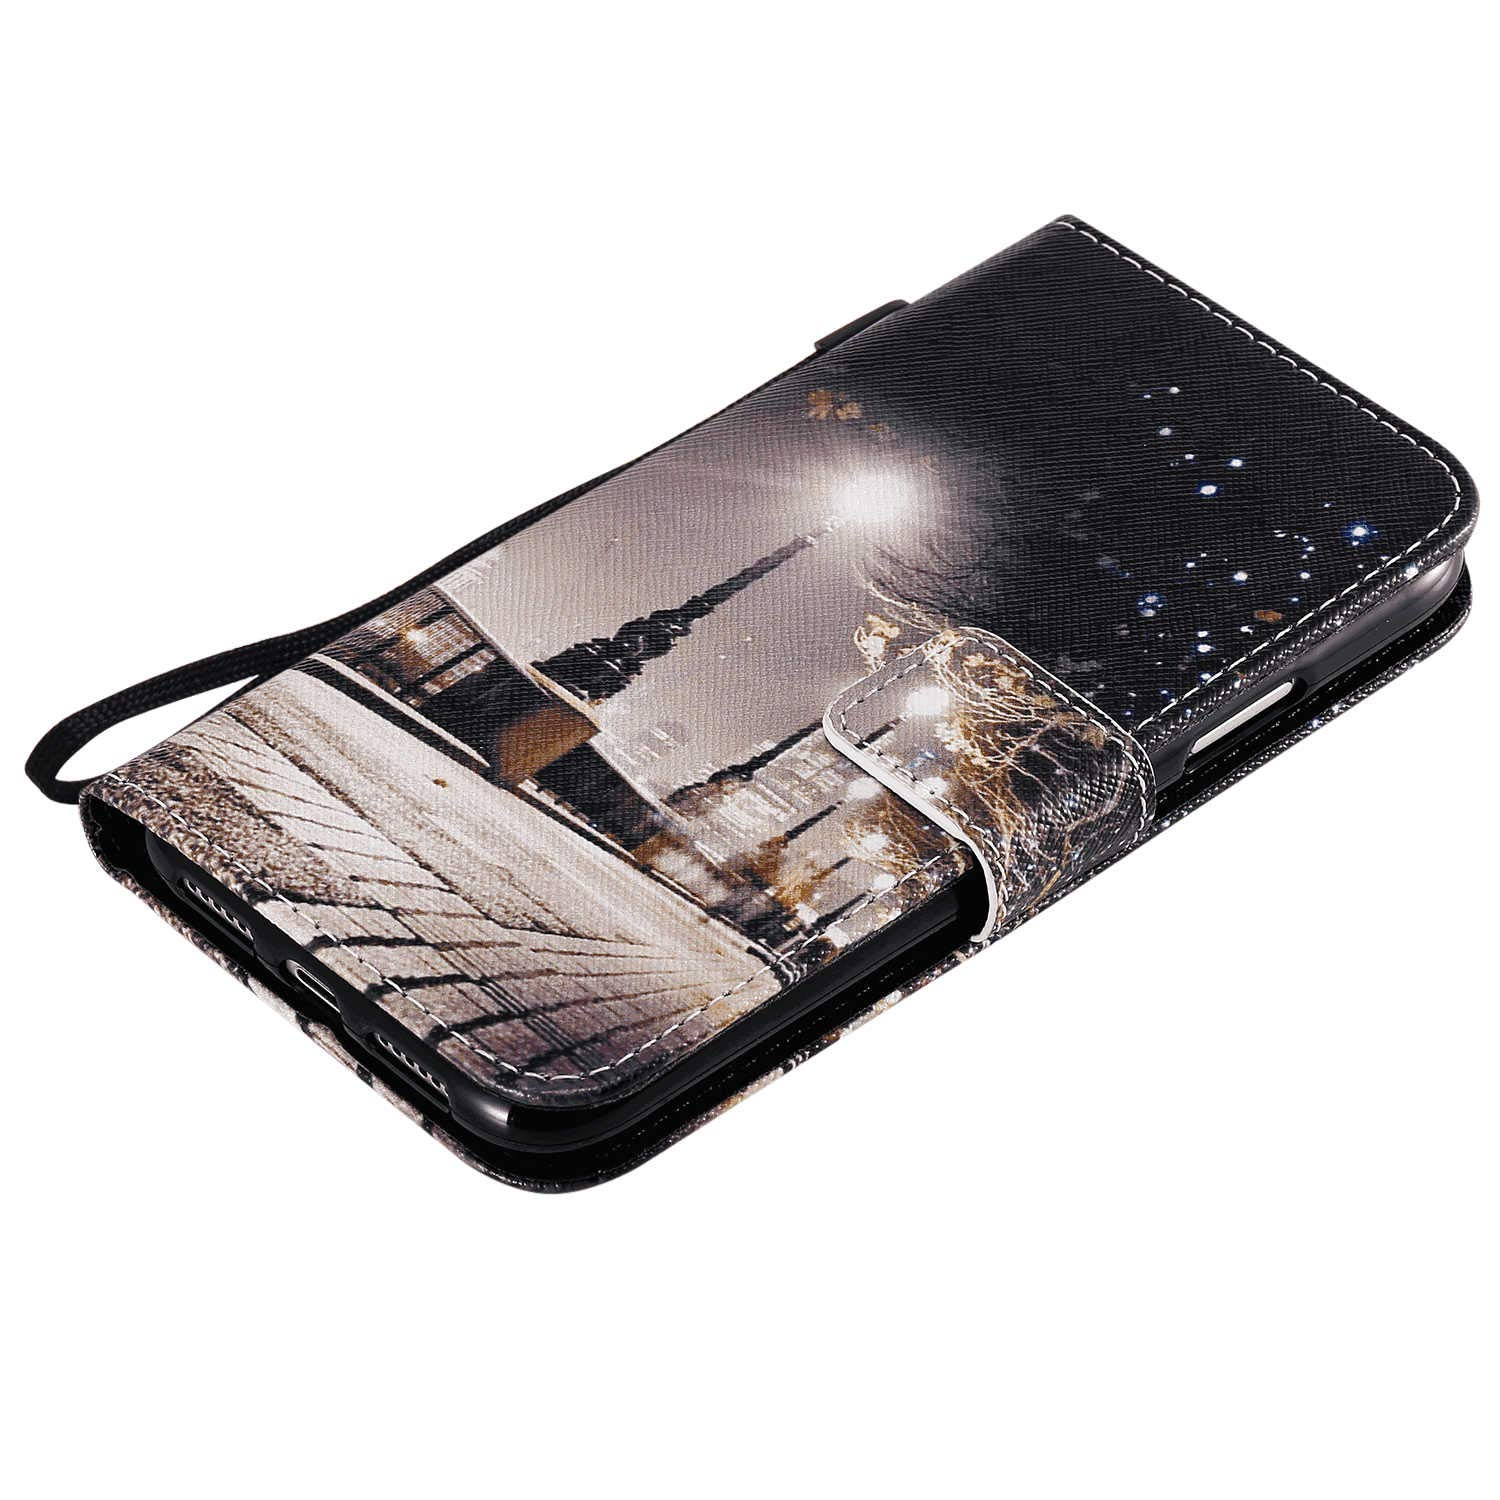 Samsung Galaxy S8 Flip Case Cover for Samsung Galaxy S8 Leather Card Holders Wallet case Kickstand Extra-Durable Business with Free Waterproof-Bag